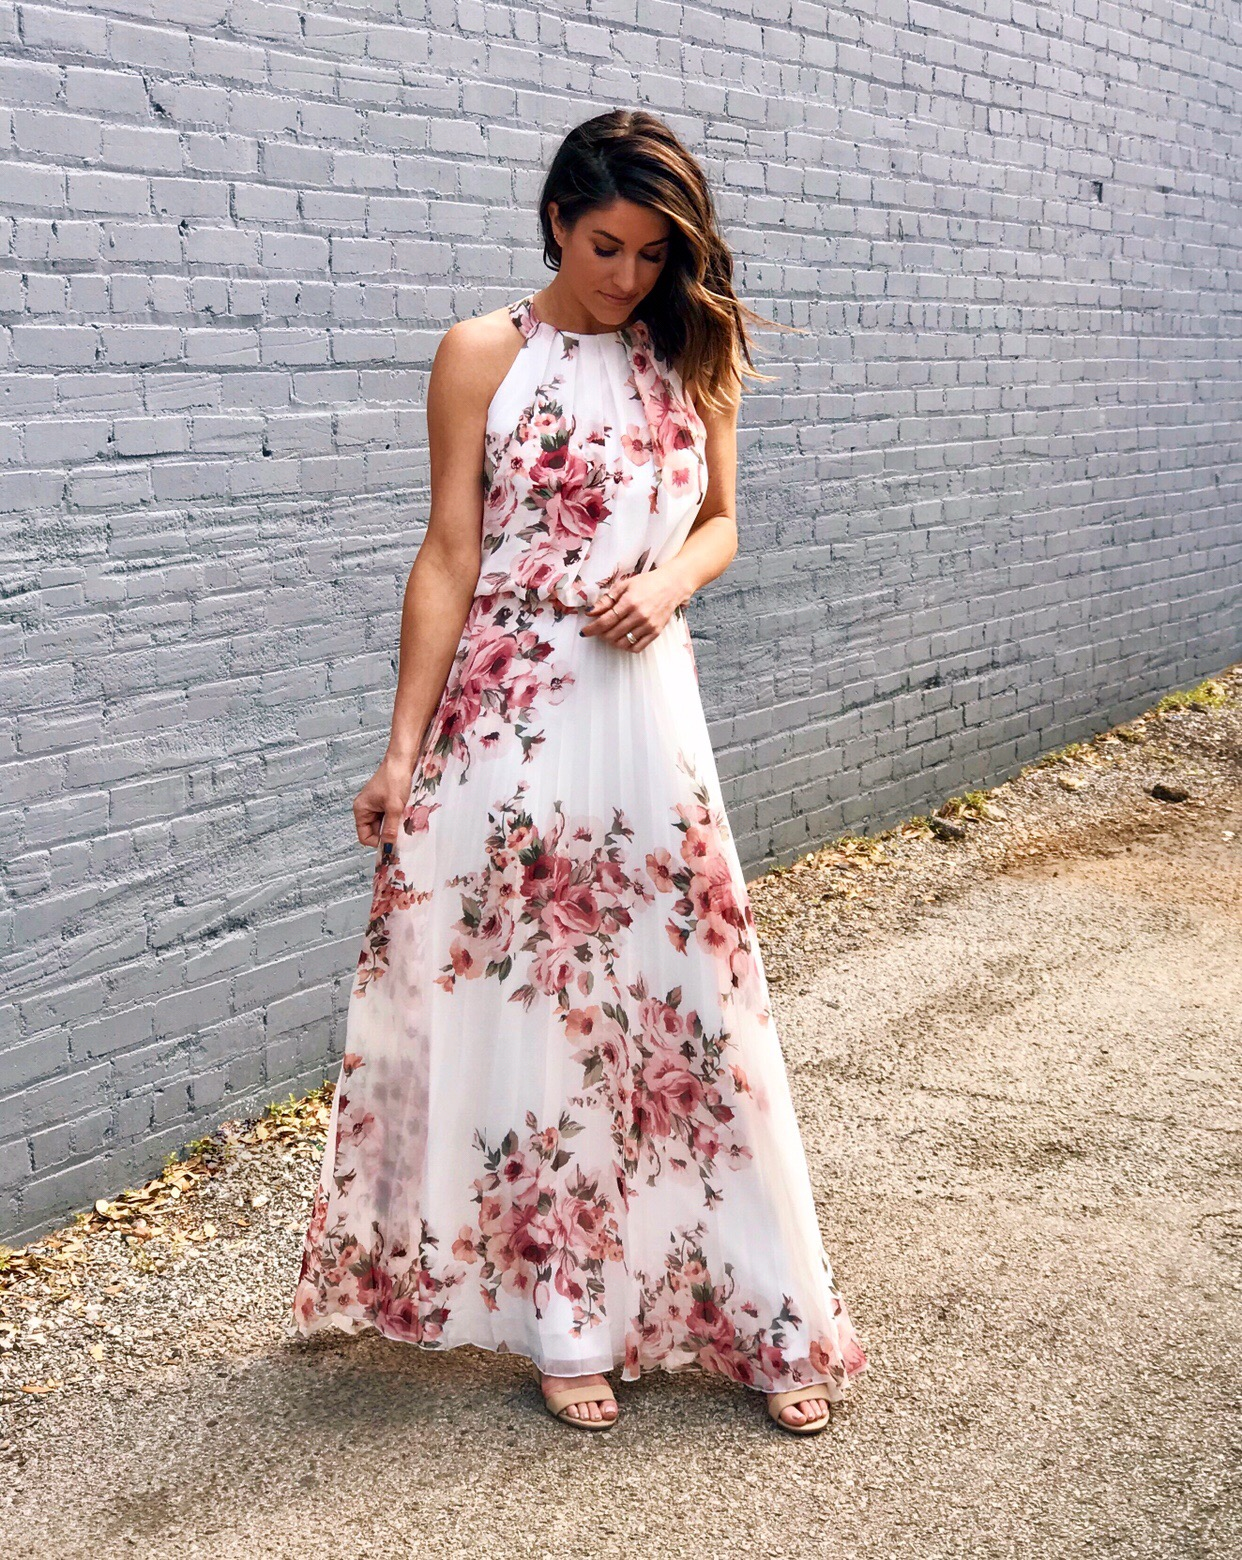 Special Occasion Dresses from JCPenney - The Sister Studio